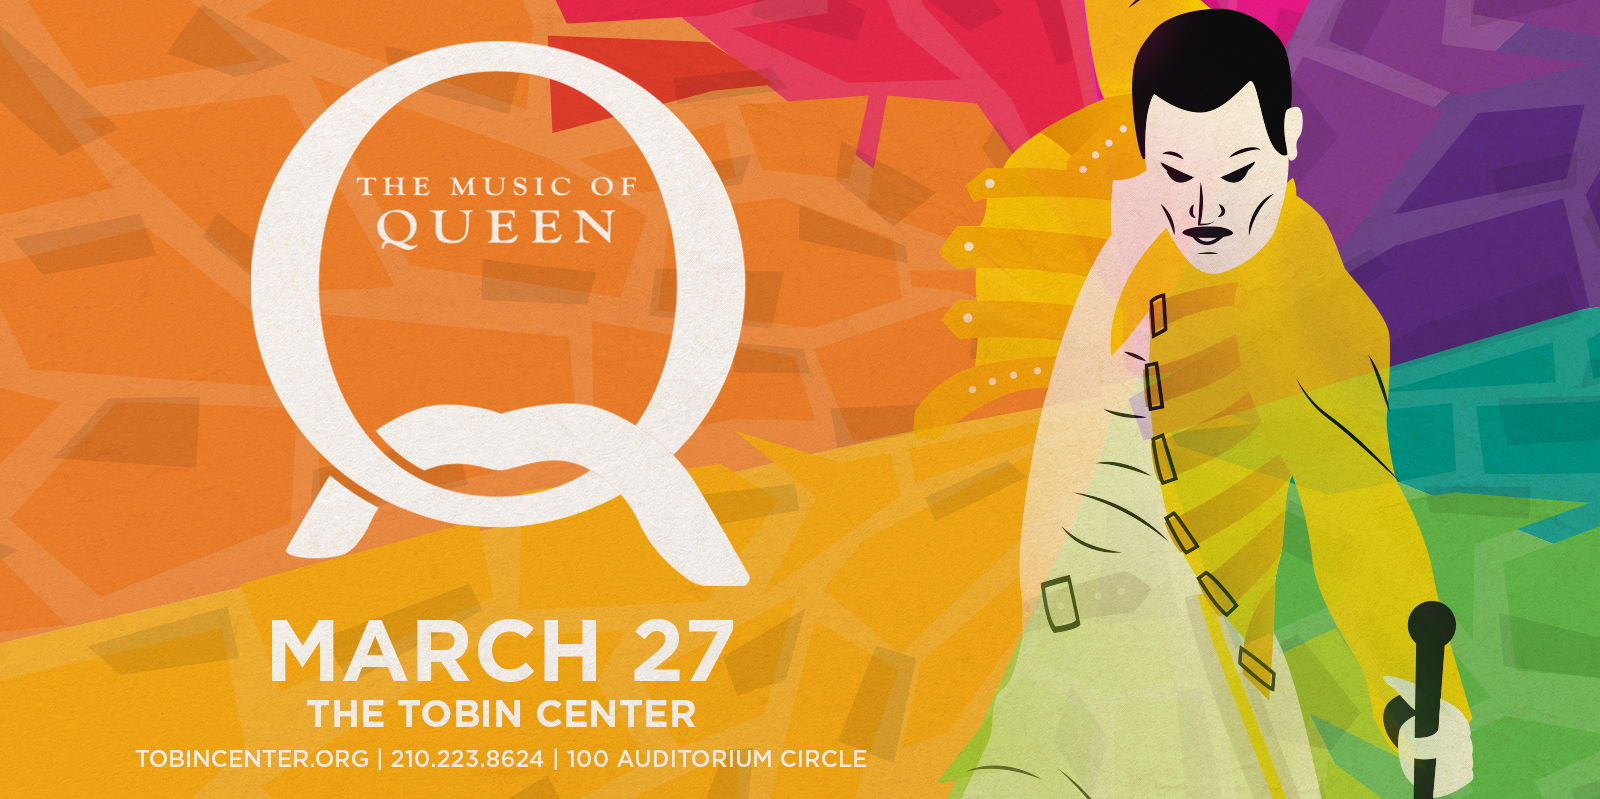 Q: The Music of Queen